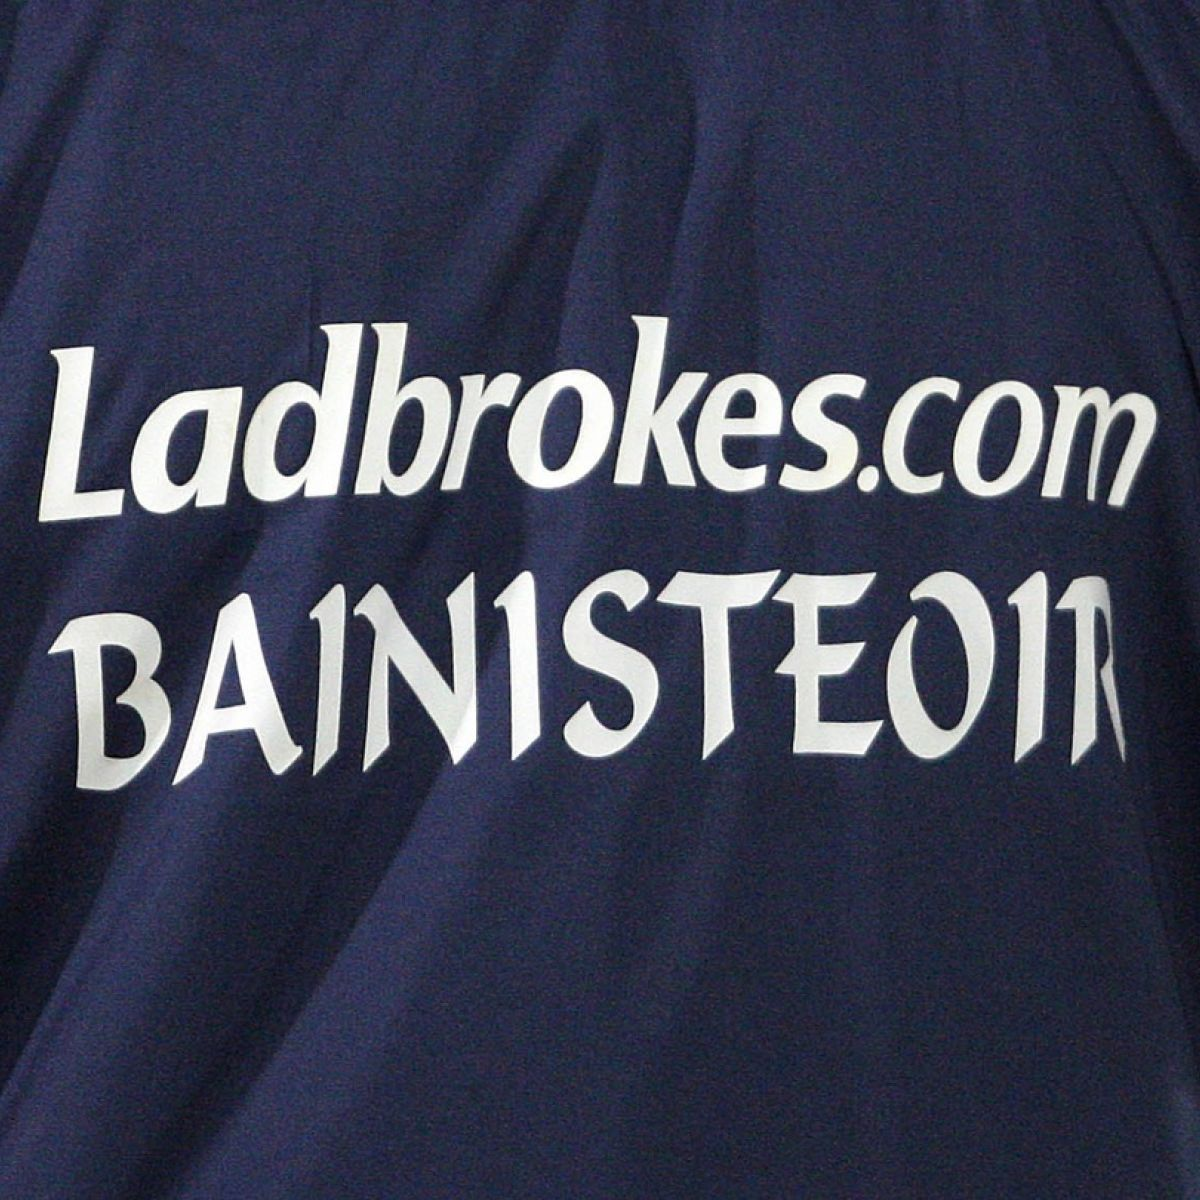 Ladbrokes propose ban on all gambling ads linked to sport